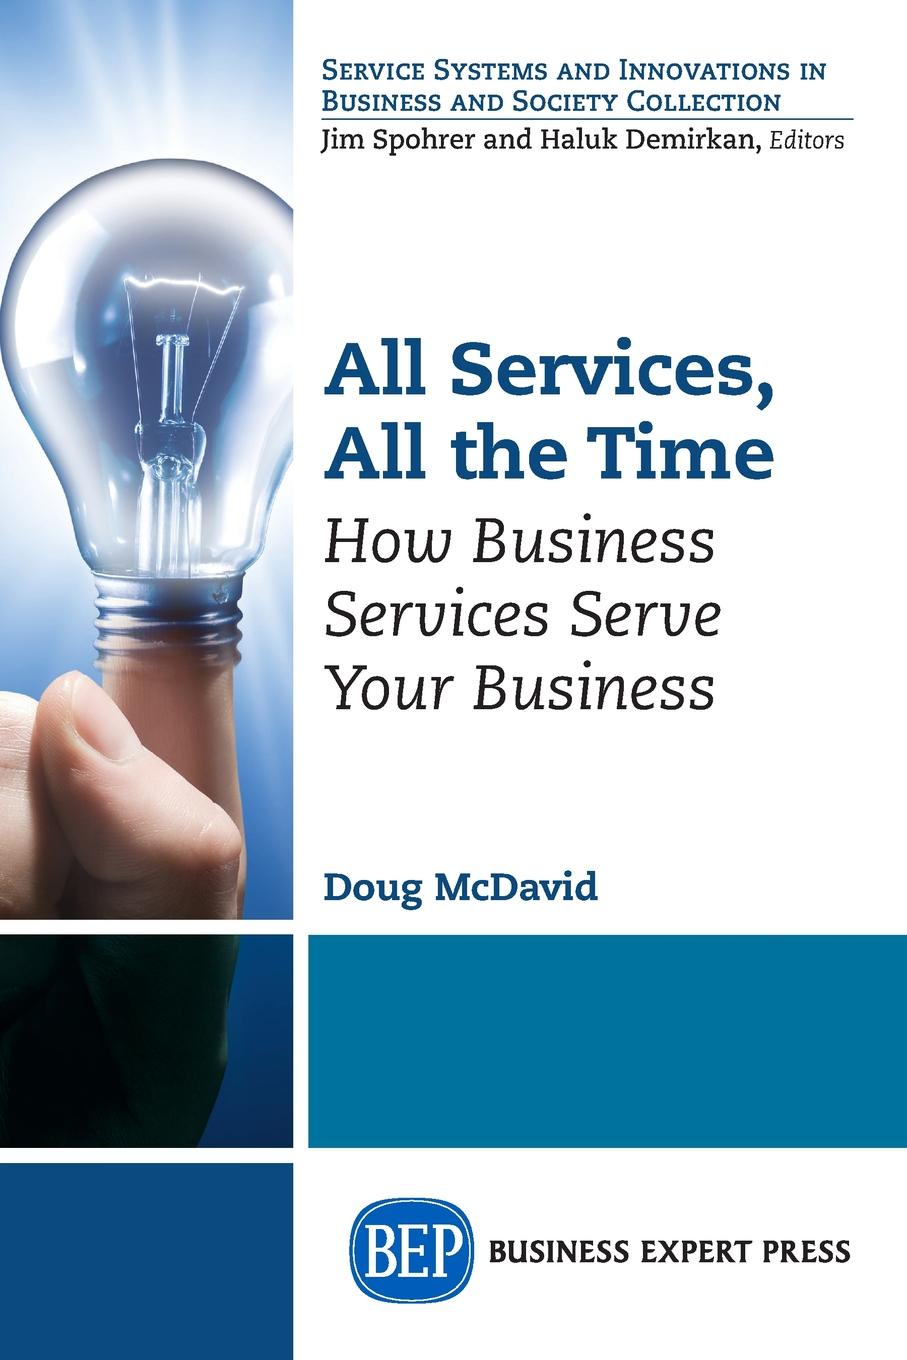 All Services, All the Time. How Business Services Serve Your Business This book takes the position that organizations, such as businesses...